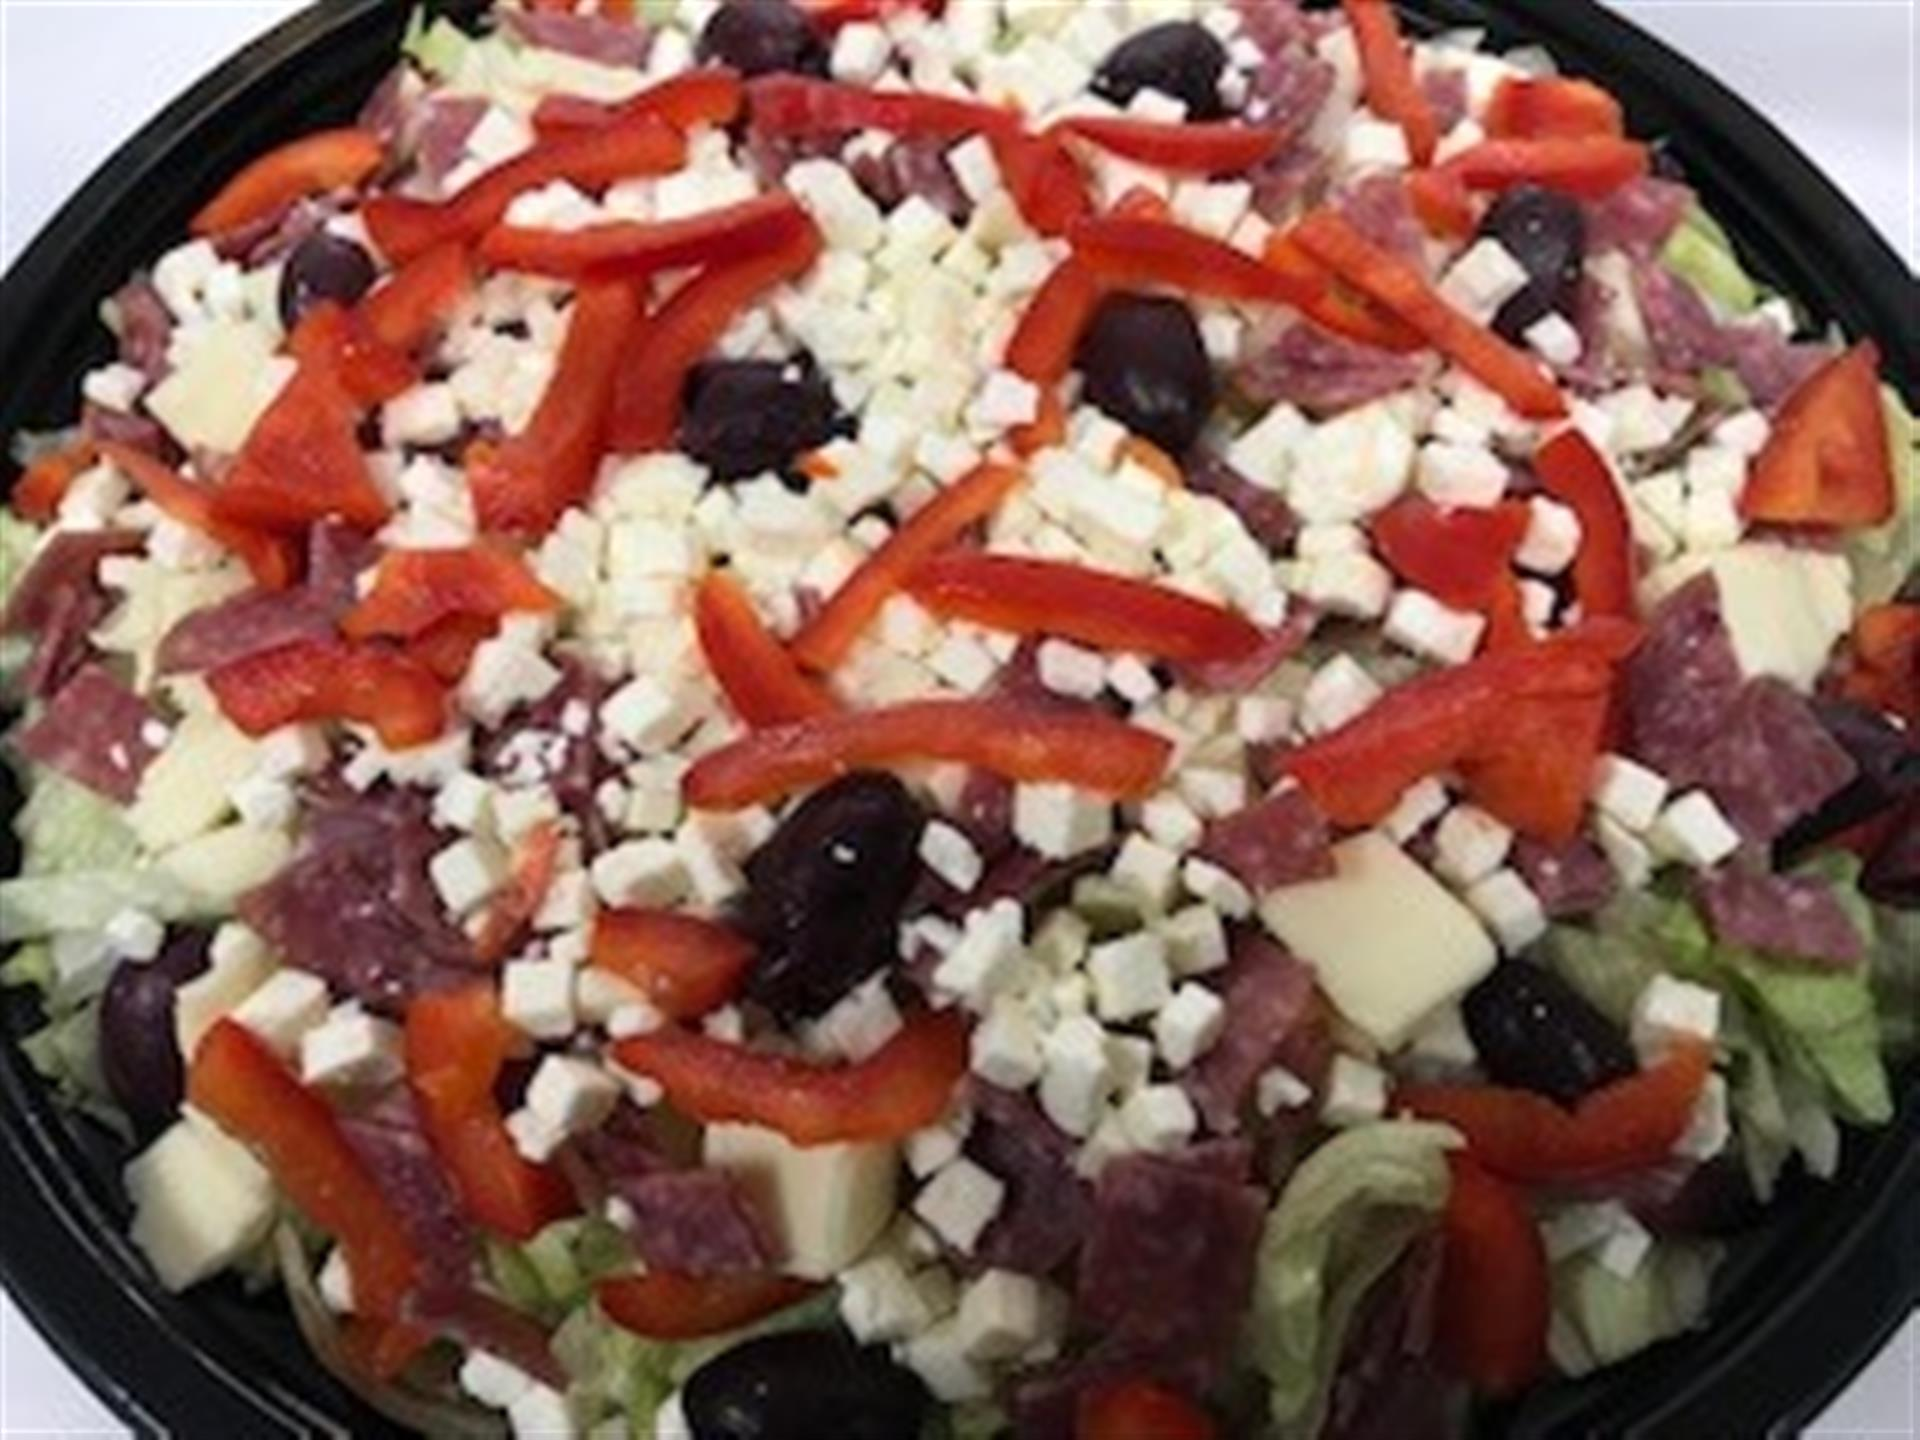 Antipasto Salad. Mozzarella, premium salami, kalamata olives, fresh red peppers and feta cheese over fresh crisp lettuce